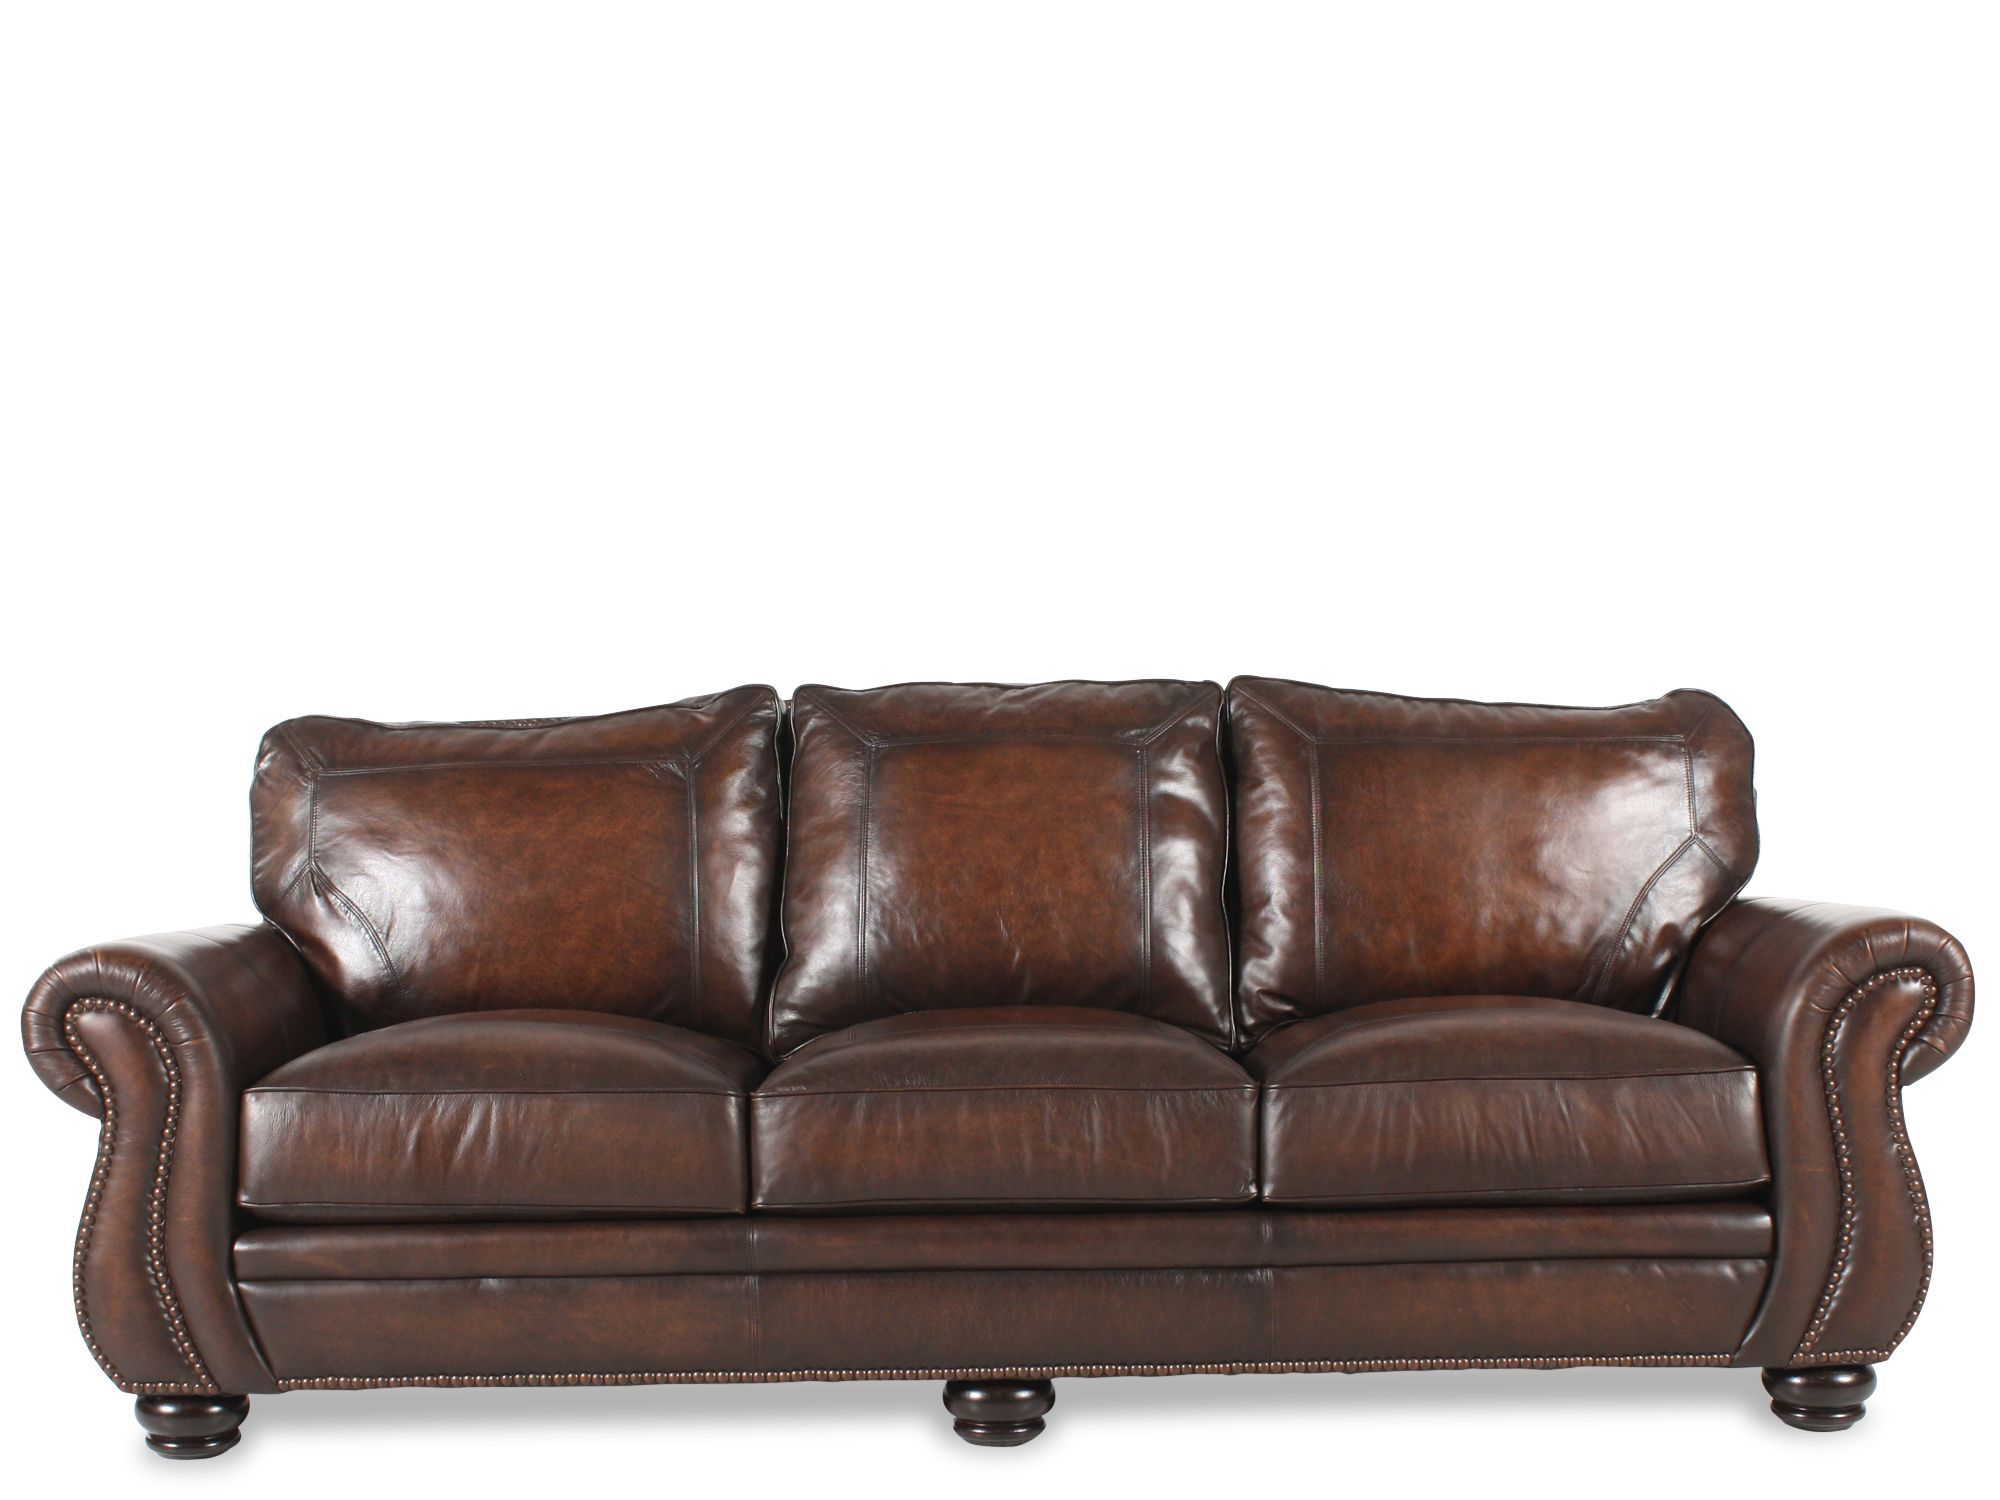 bernhardt breckenridge sofa best ikea leather 1657 i love this one the dark brown would wear well and bun feet reduce scratching on wood floor